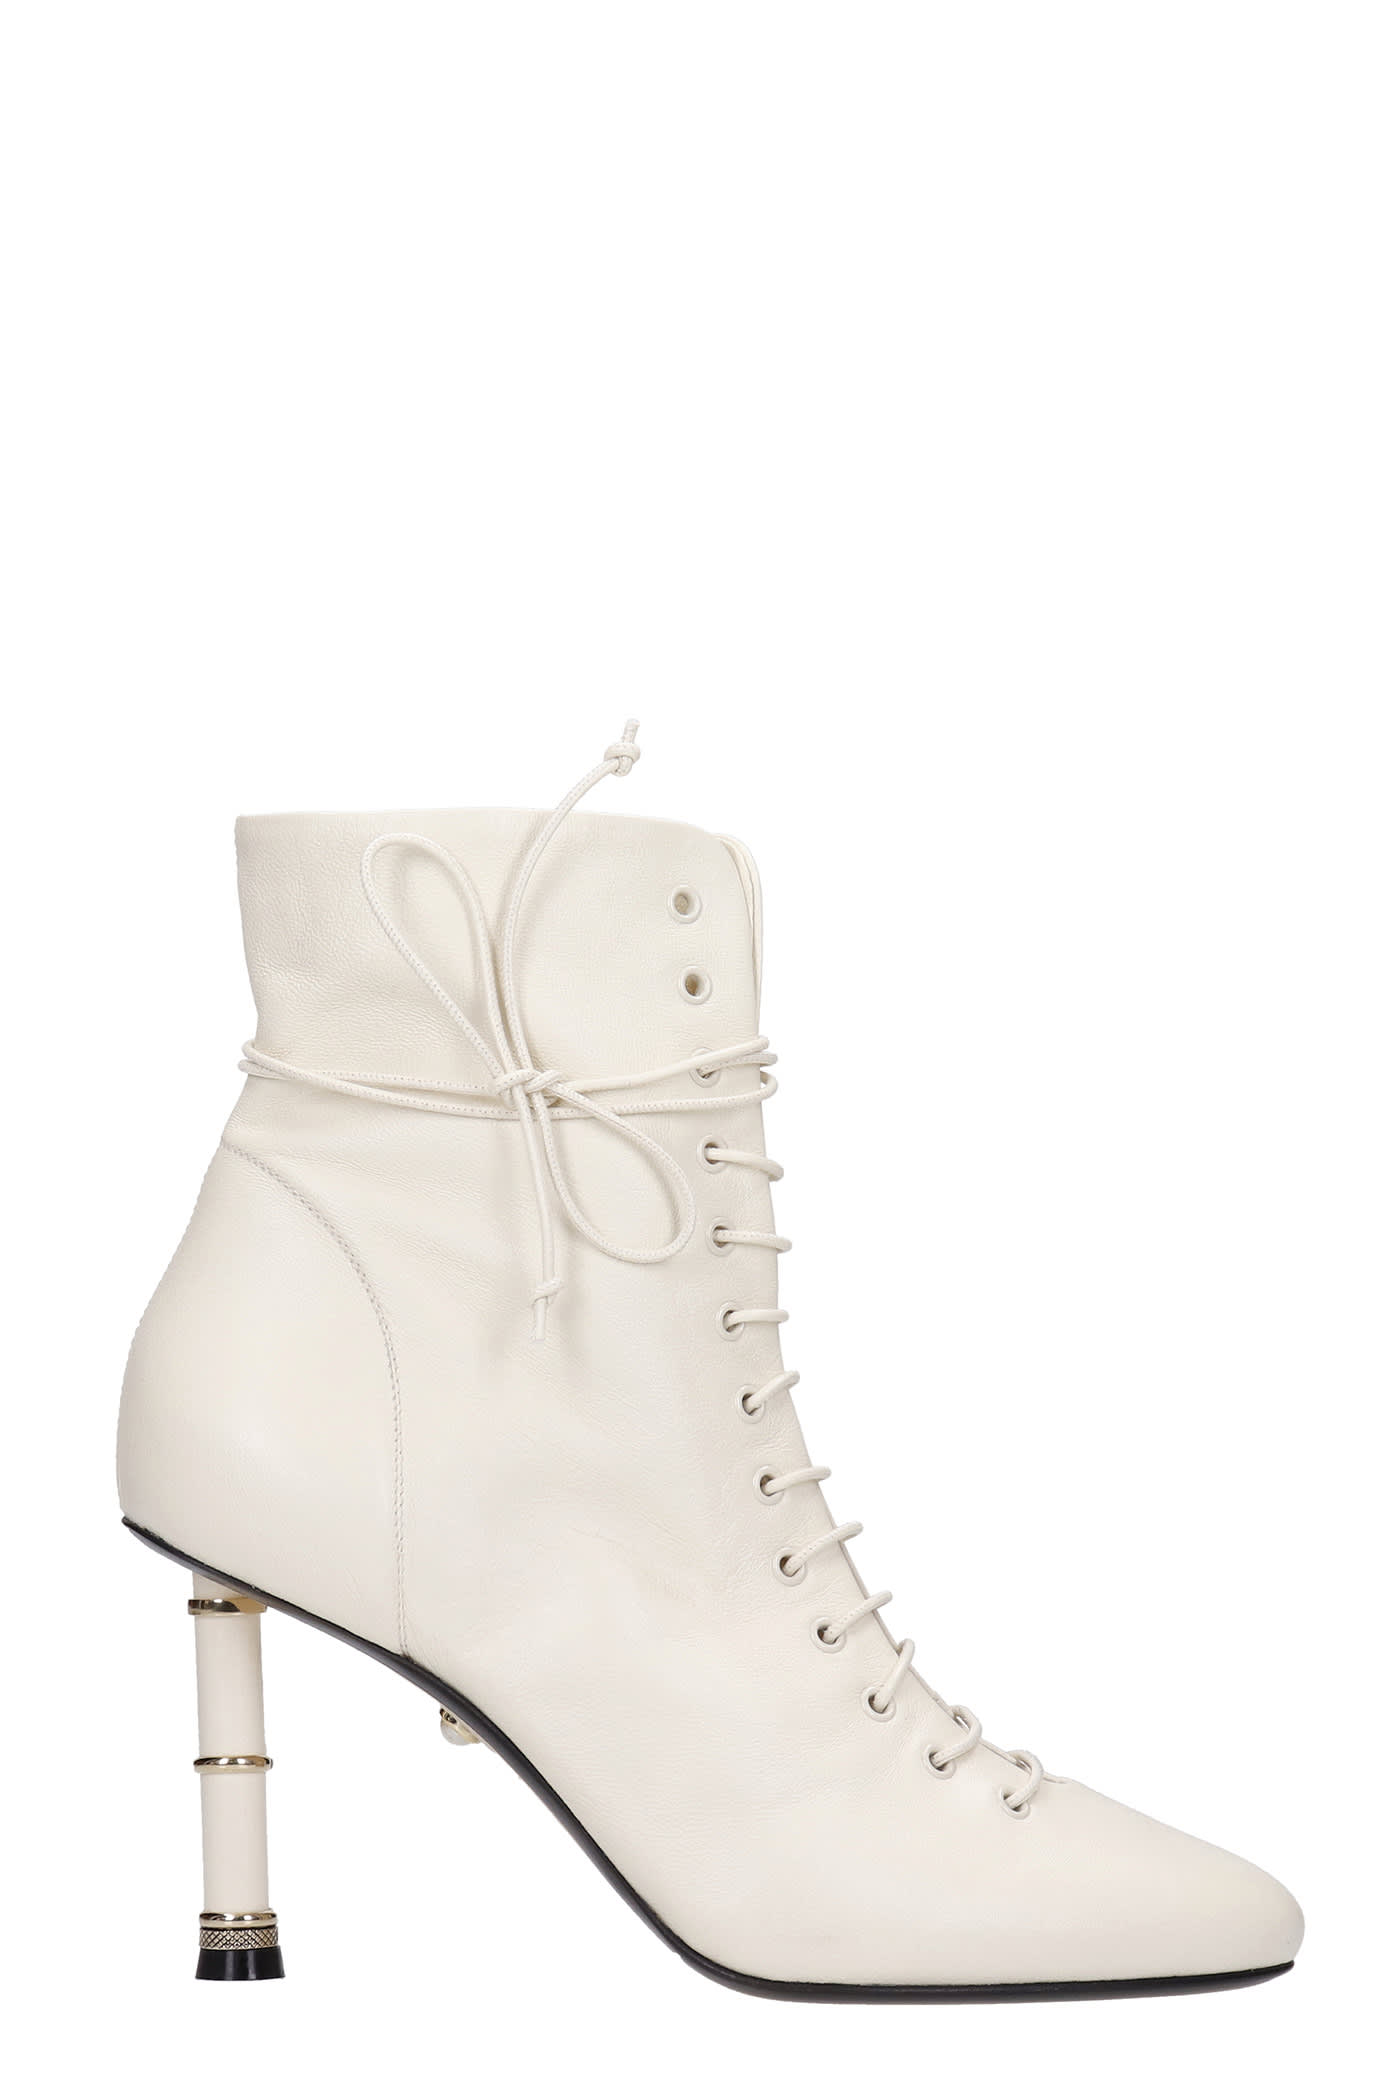 Love 090 High Heels Ankle Boots In Beige Leather